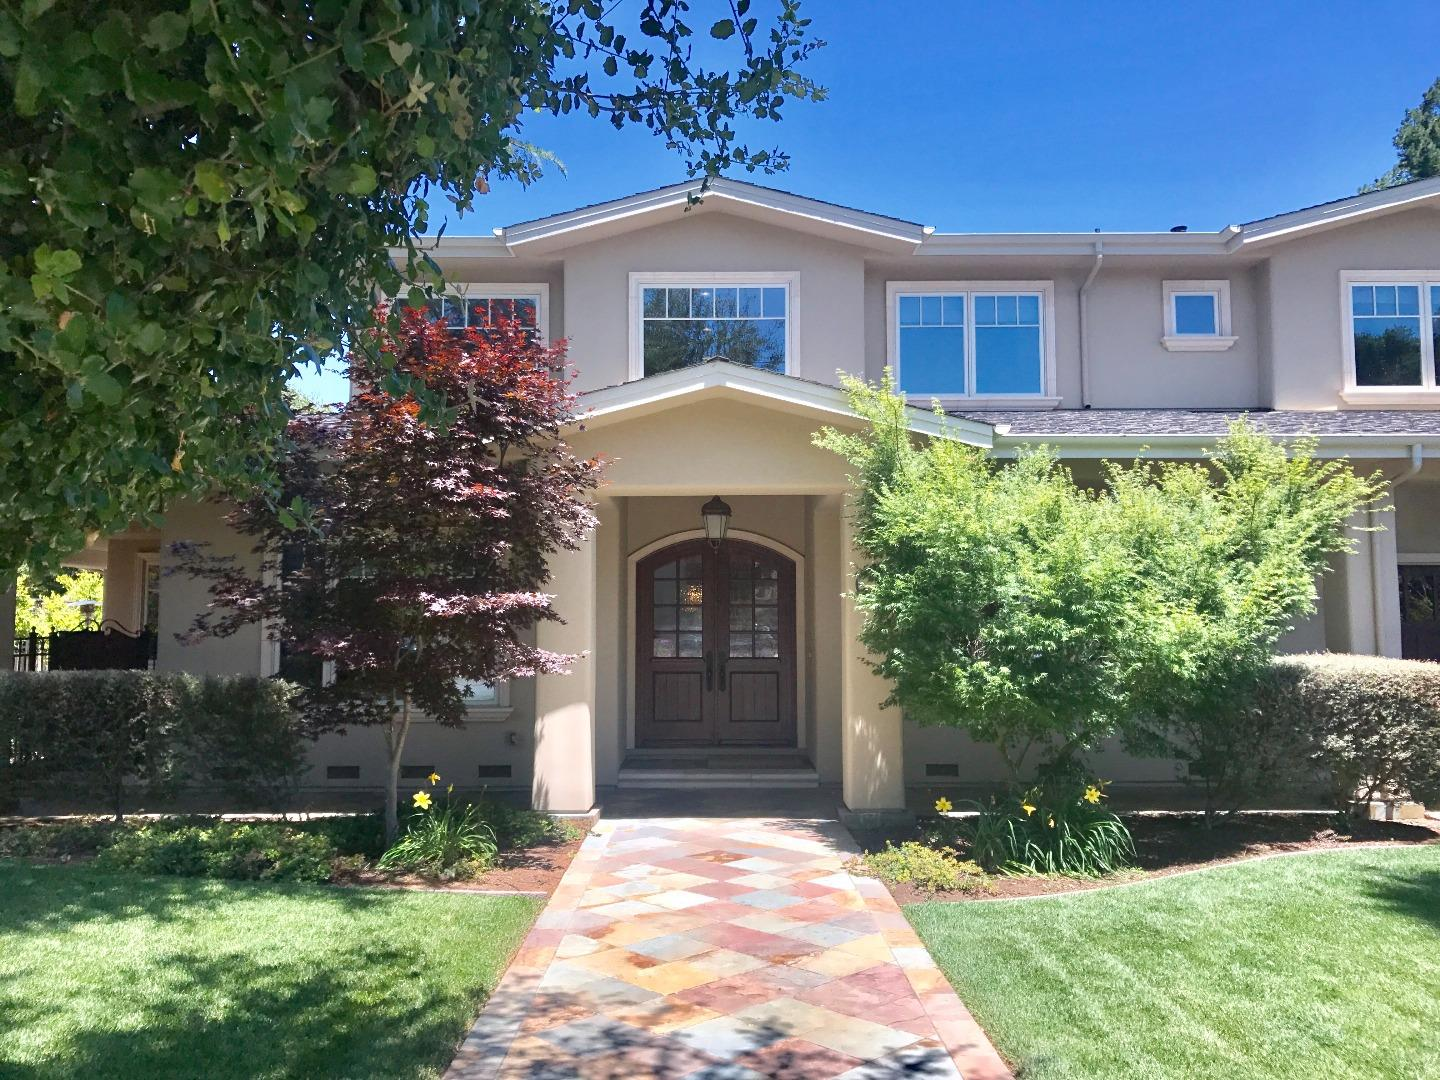 Single Family Home for Sale at 649 Mills Avenue Los Altos, California 94022 United States